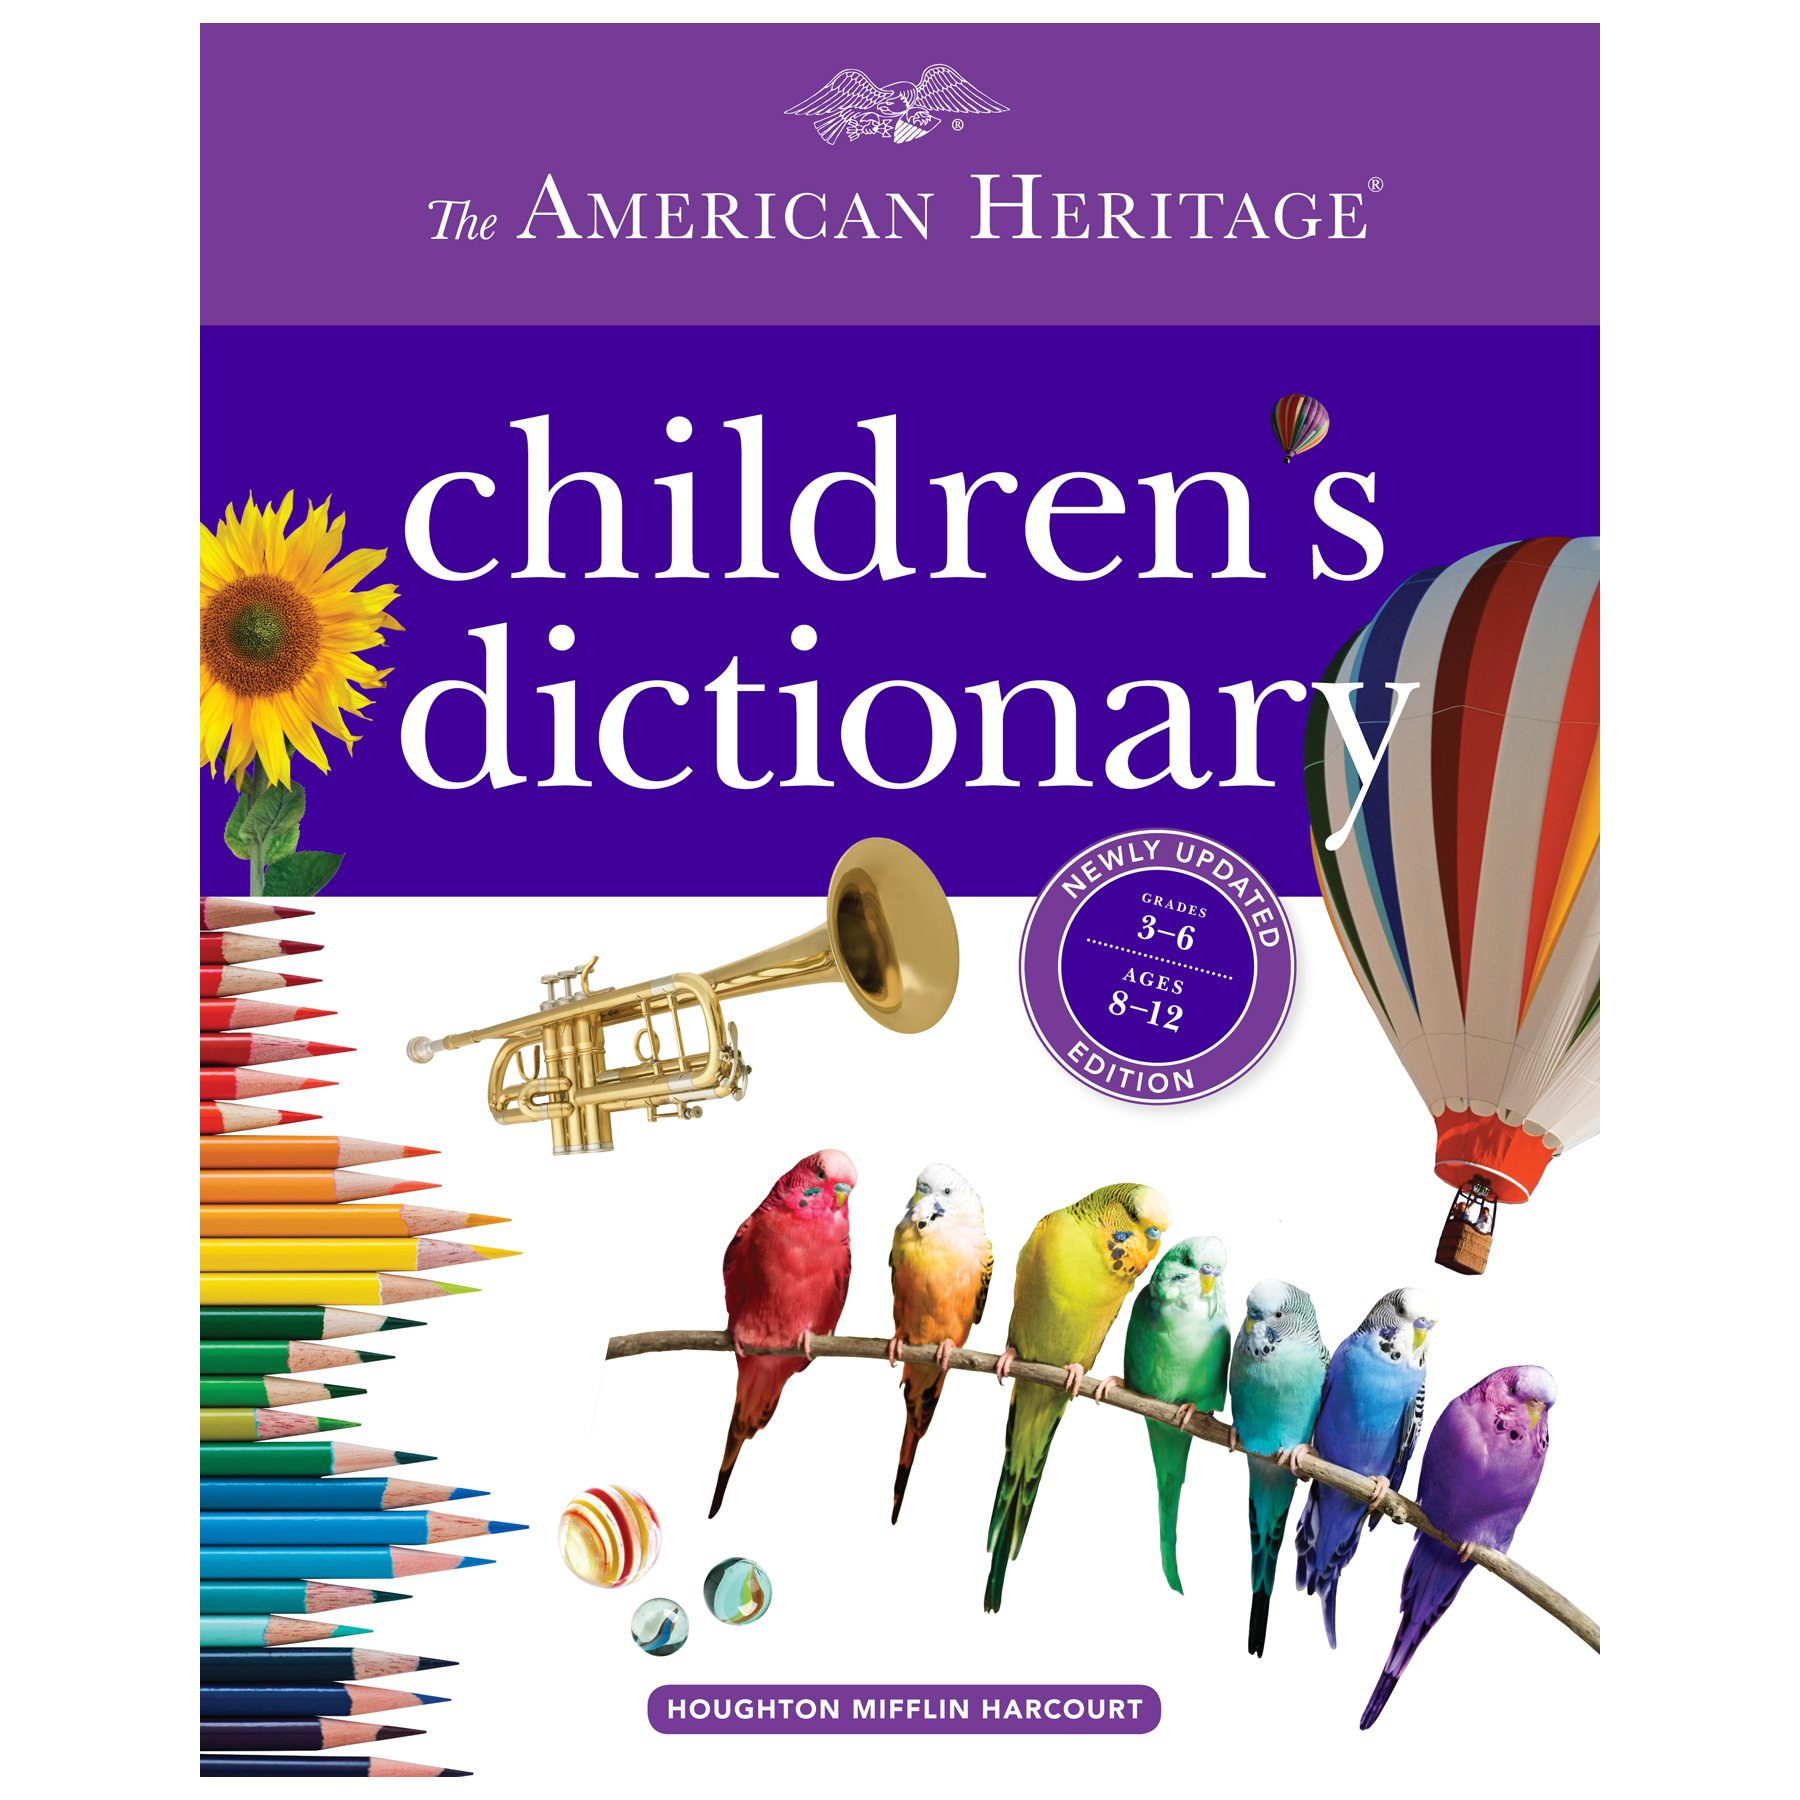 The American Heritage Children's Dictionary by HOUGHTON MIFFLIN